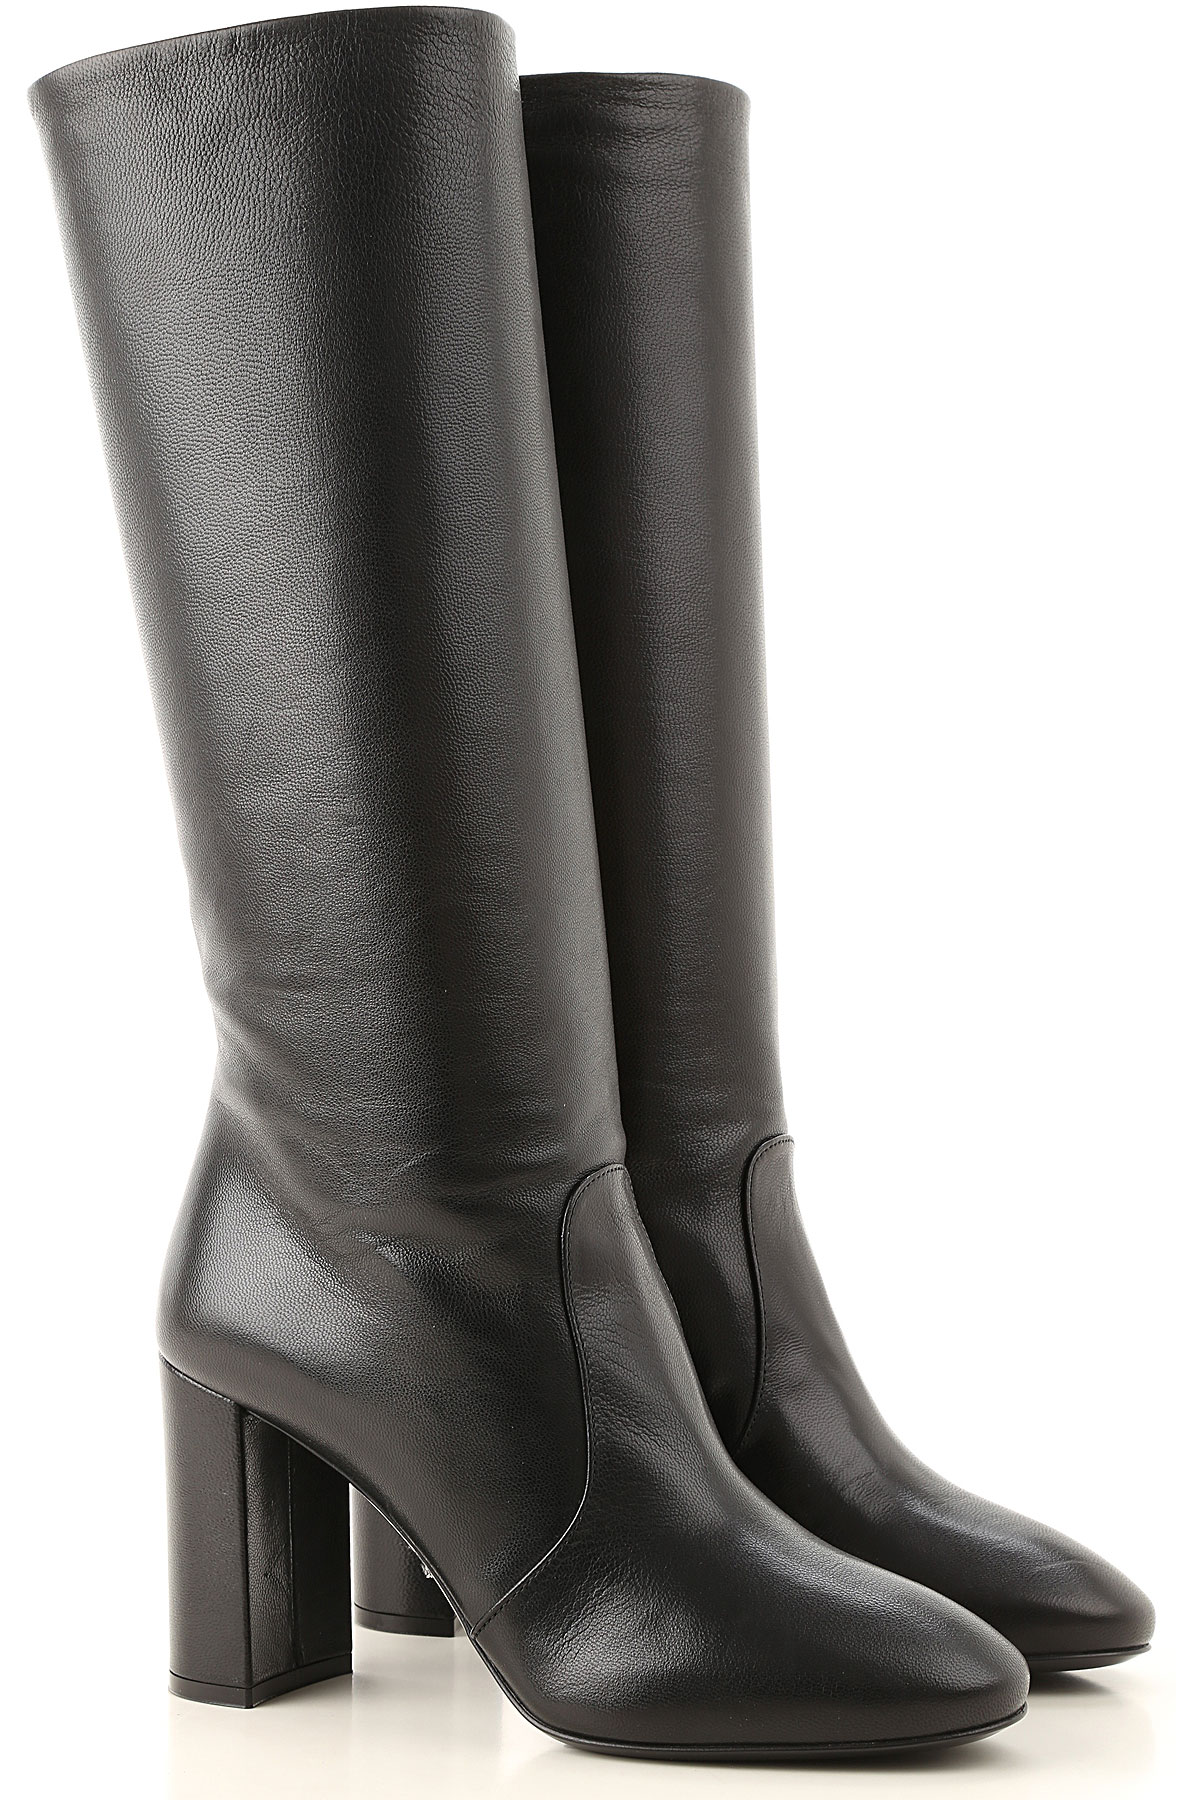 Prada Boots for Women, Booties On Sale, Black, Leather, 2019, 5 5.5 6.5 7.5 8 8.5 9